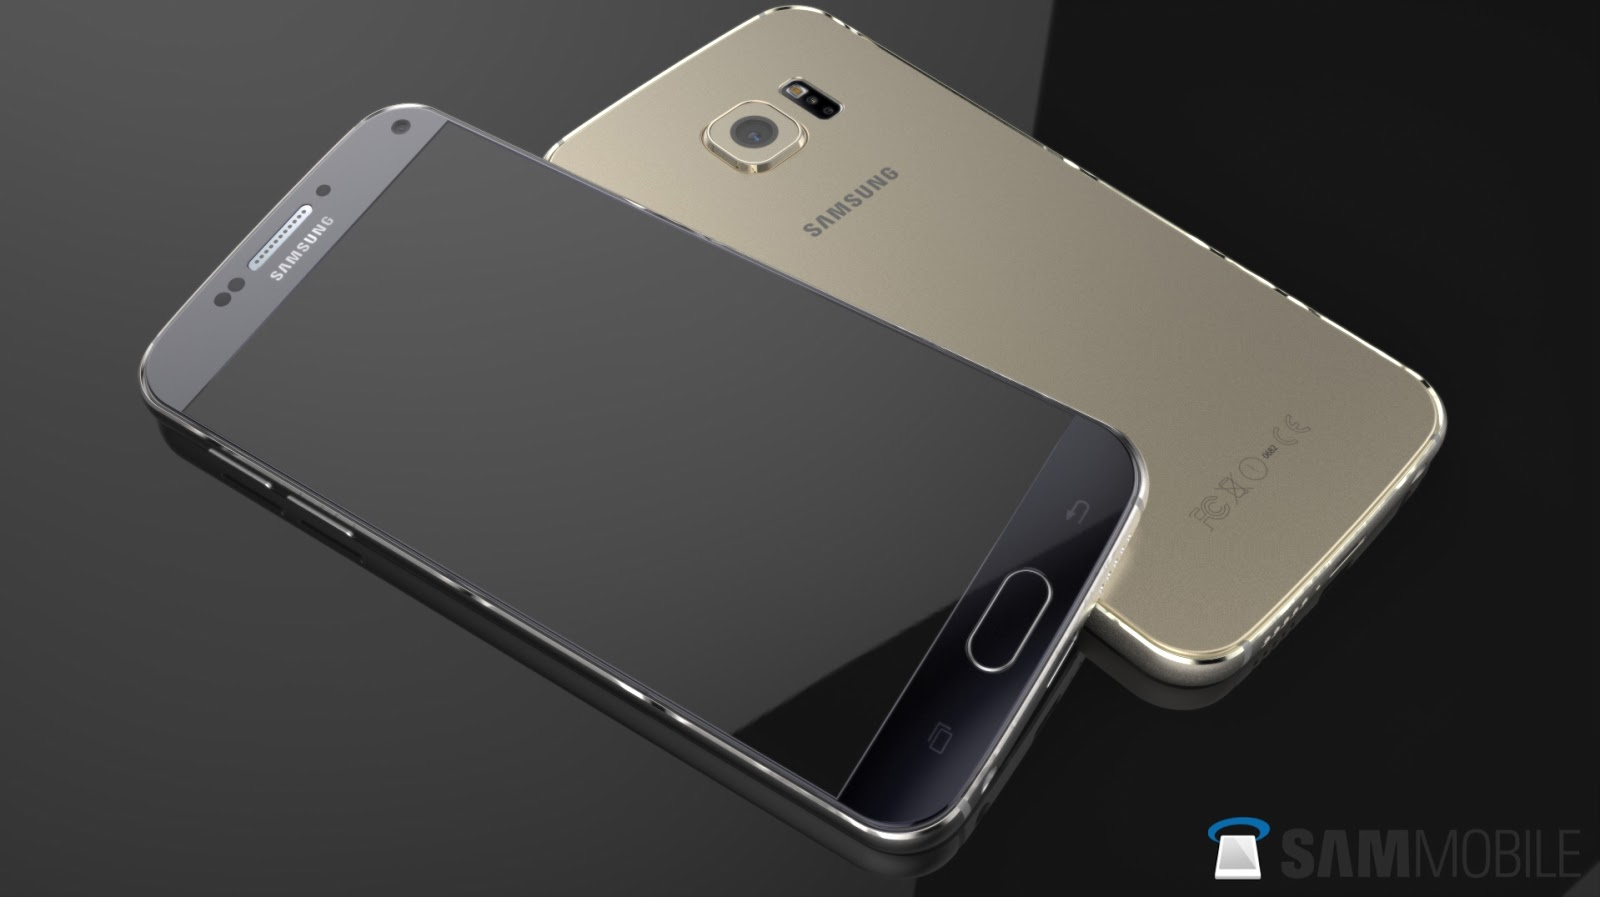 Price Of Samsung Galaxy S7 And S7 Edge